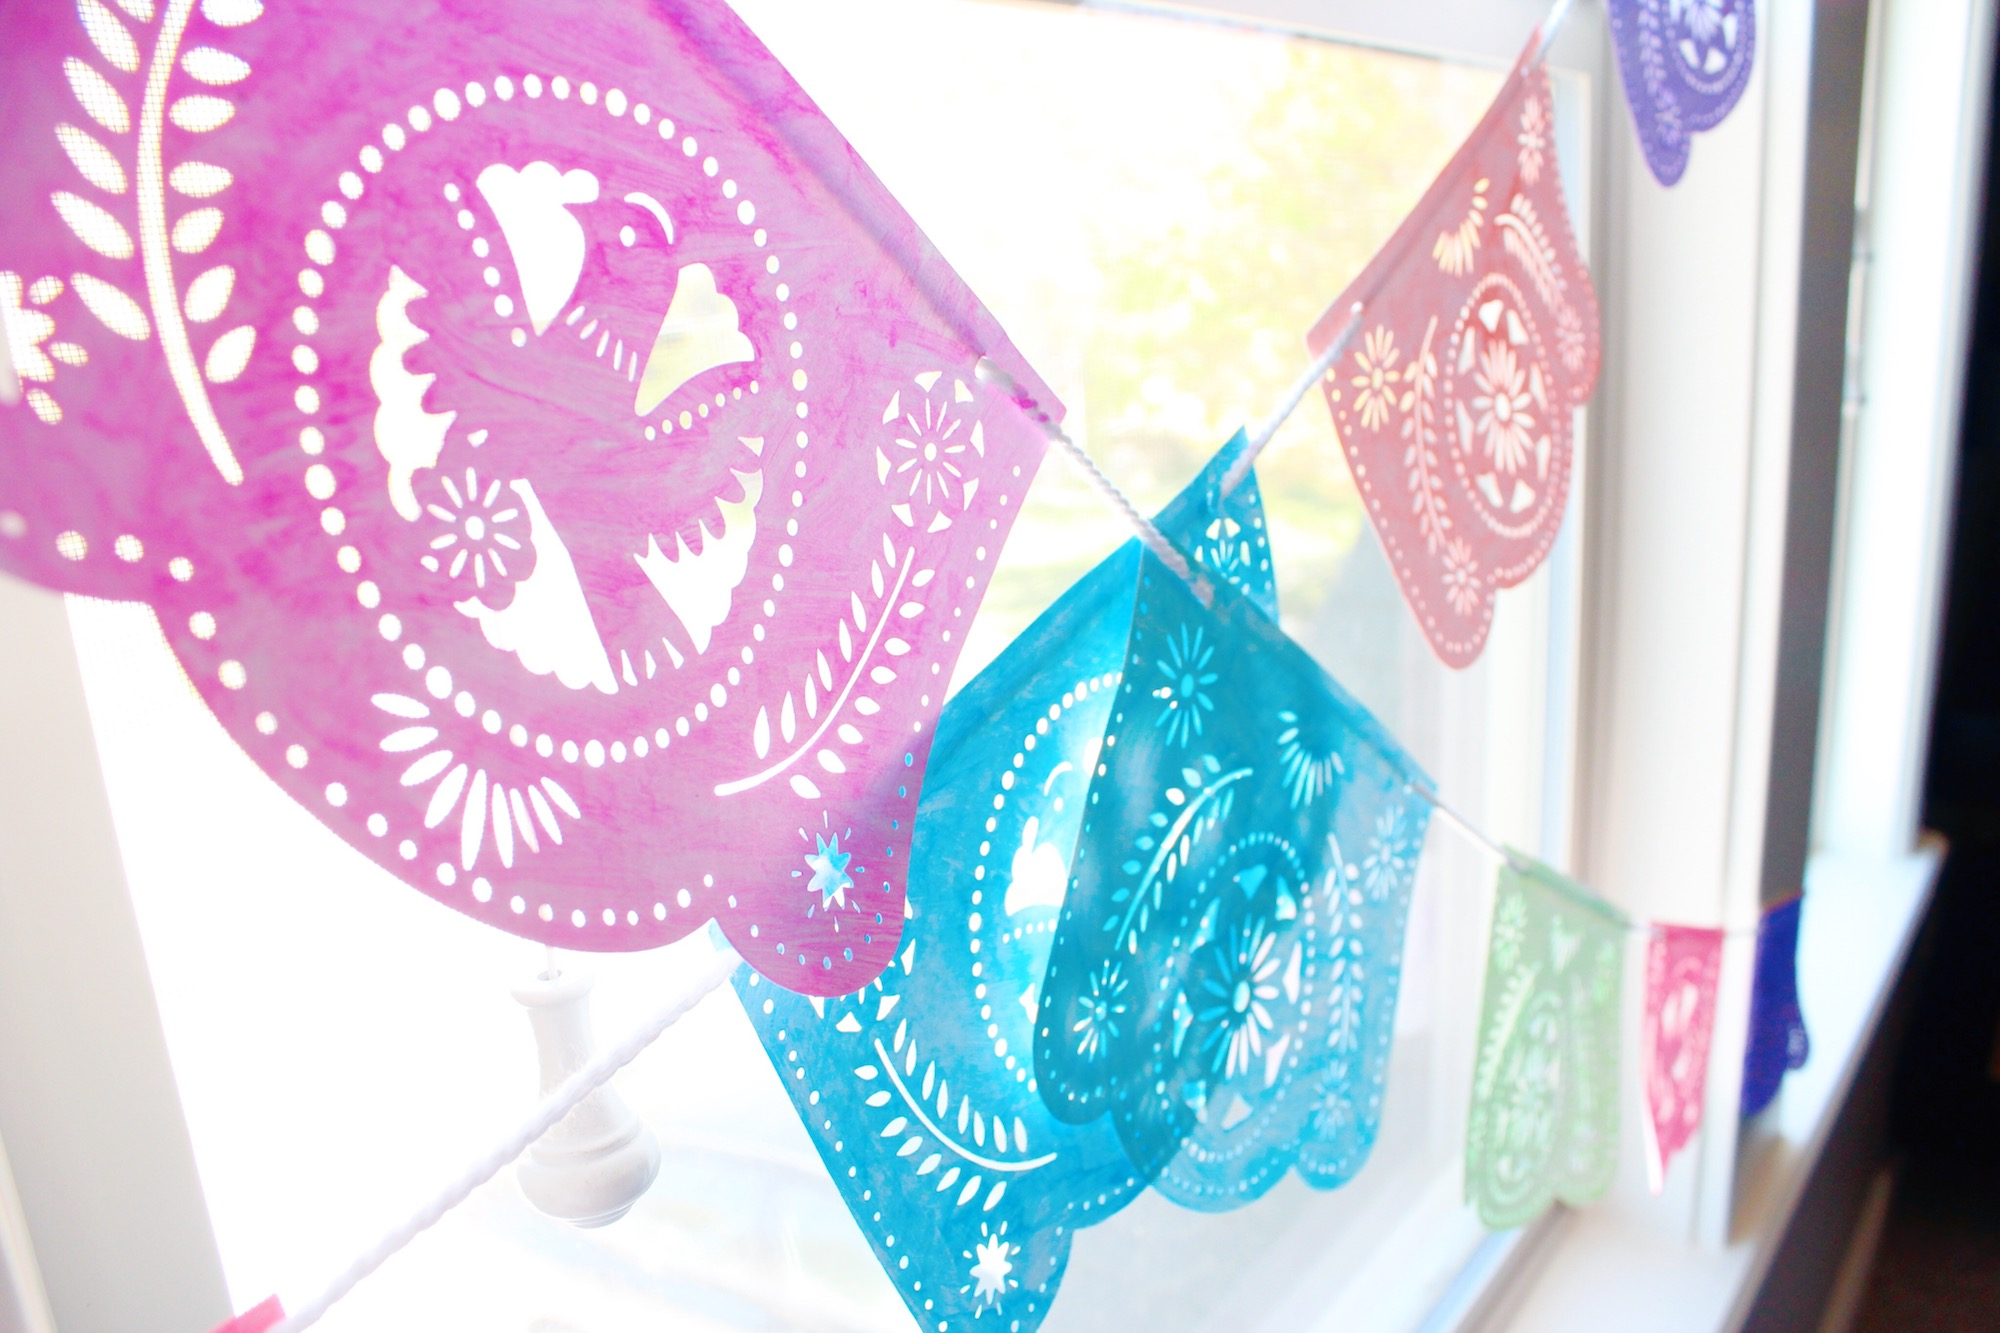 Papel Picado_Cinco de Mayo Fiesta Decorations_Design Organize Party.JPG